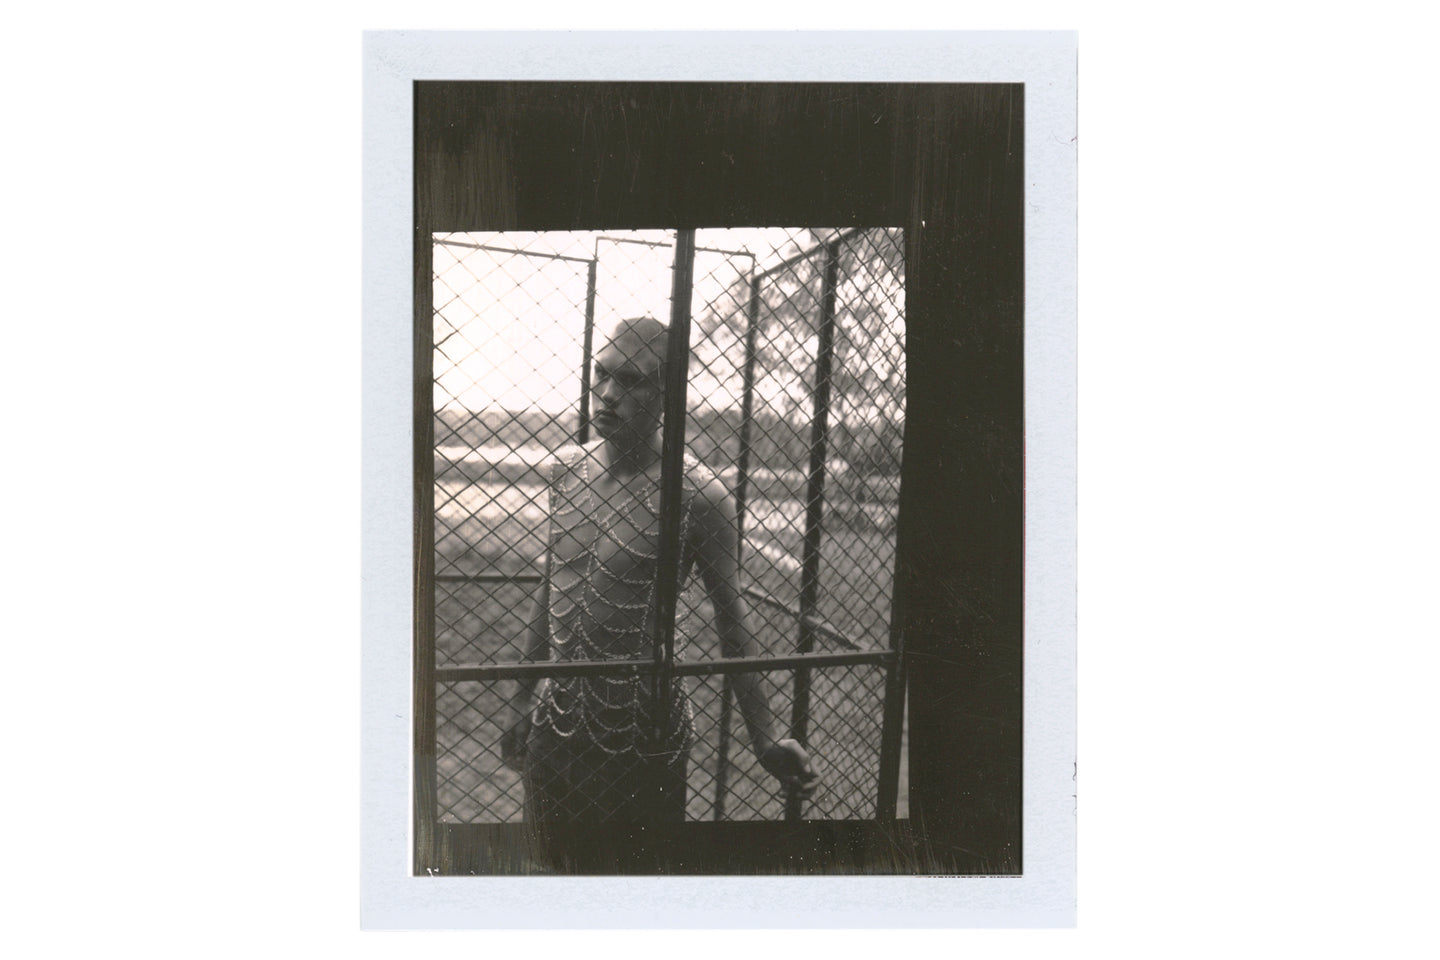 Boy in Cage, 1995